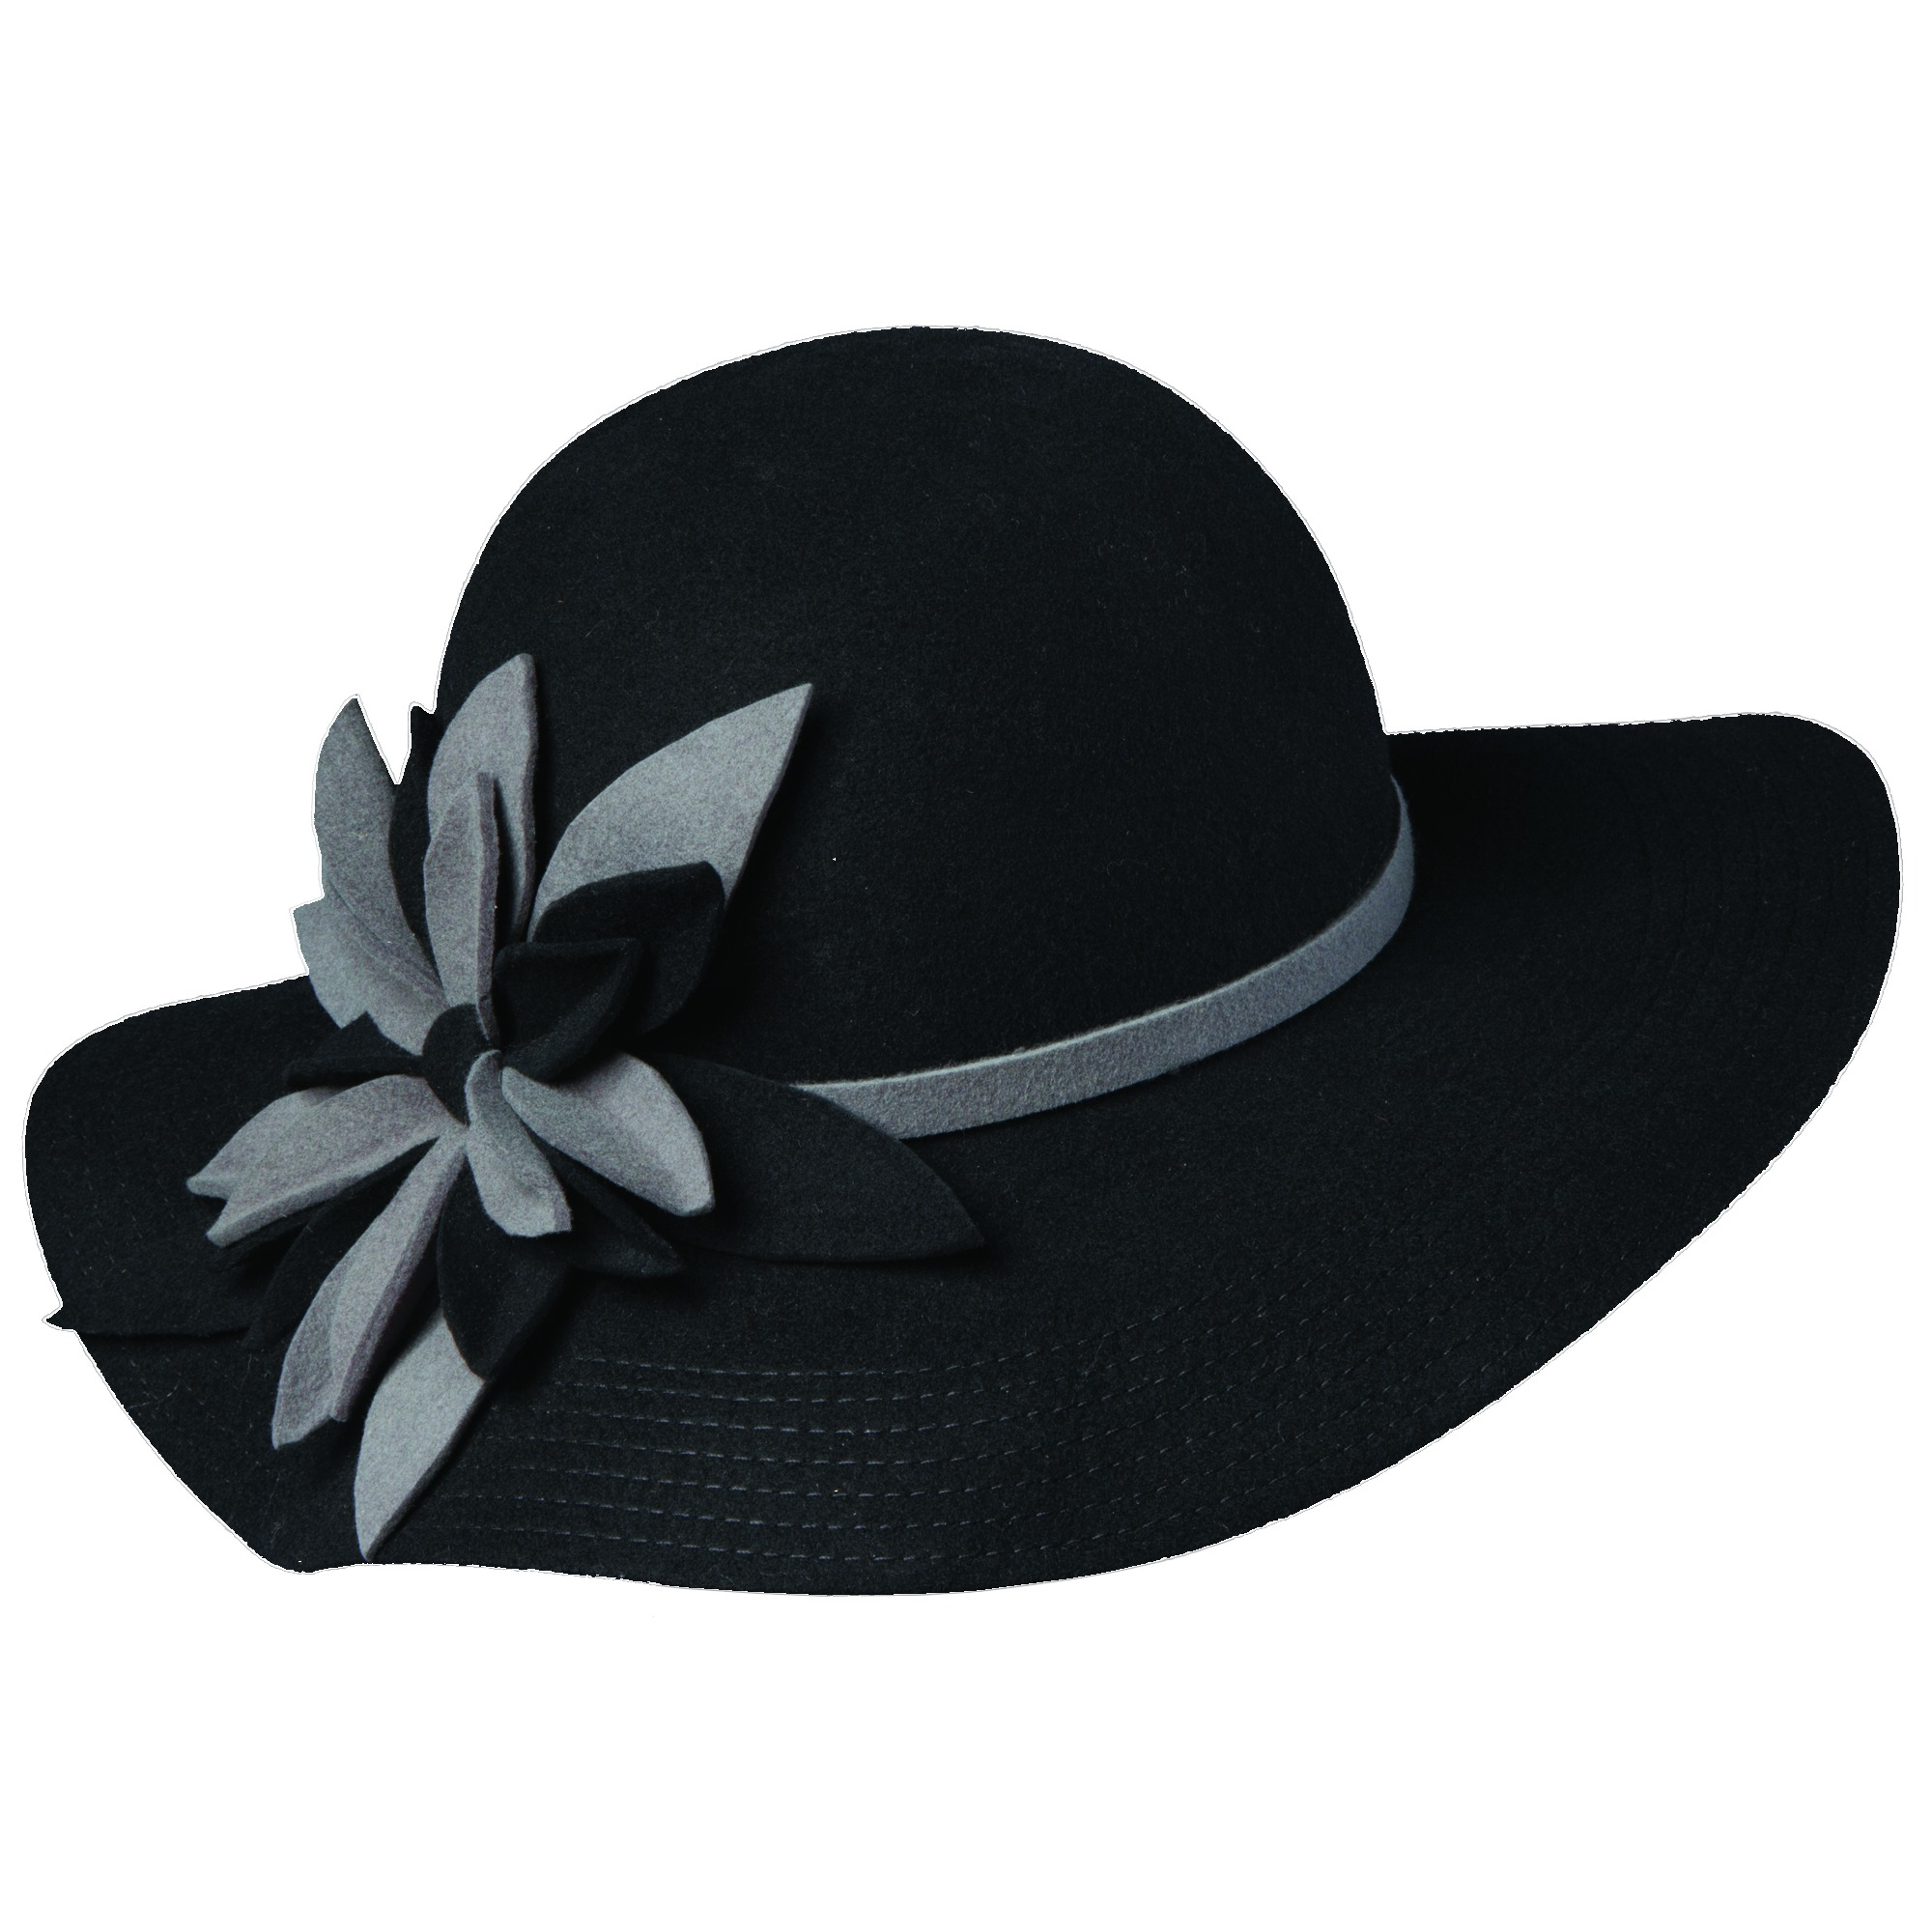 038ad178 Callanan Wool Felt Floppy Hat with Flower | Explorer Hats